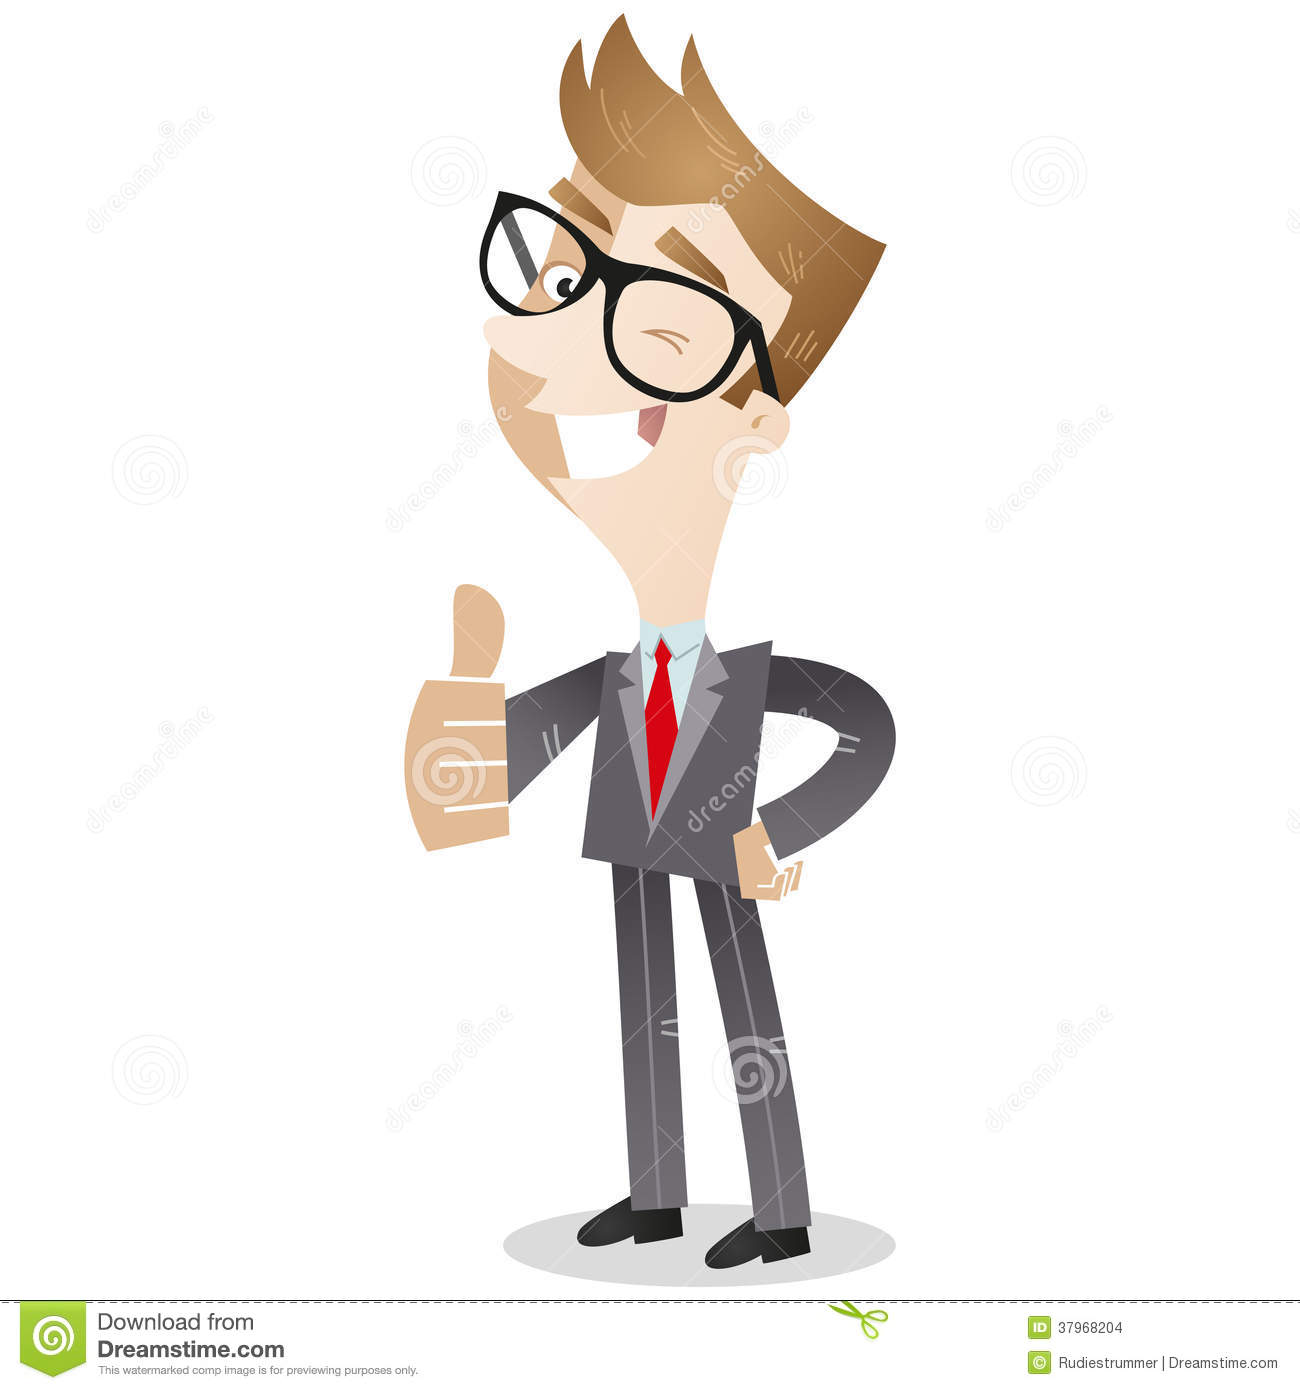 Person Giving Thumbs Up Clipart.